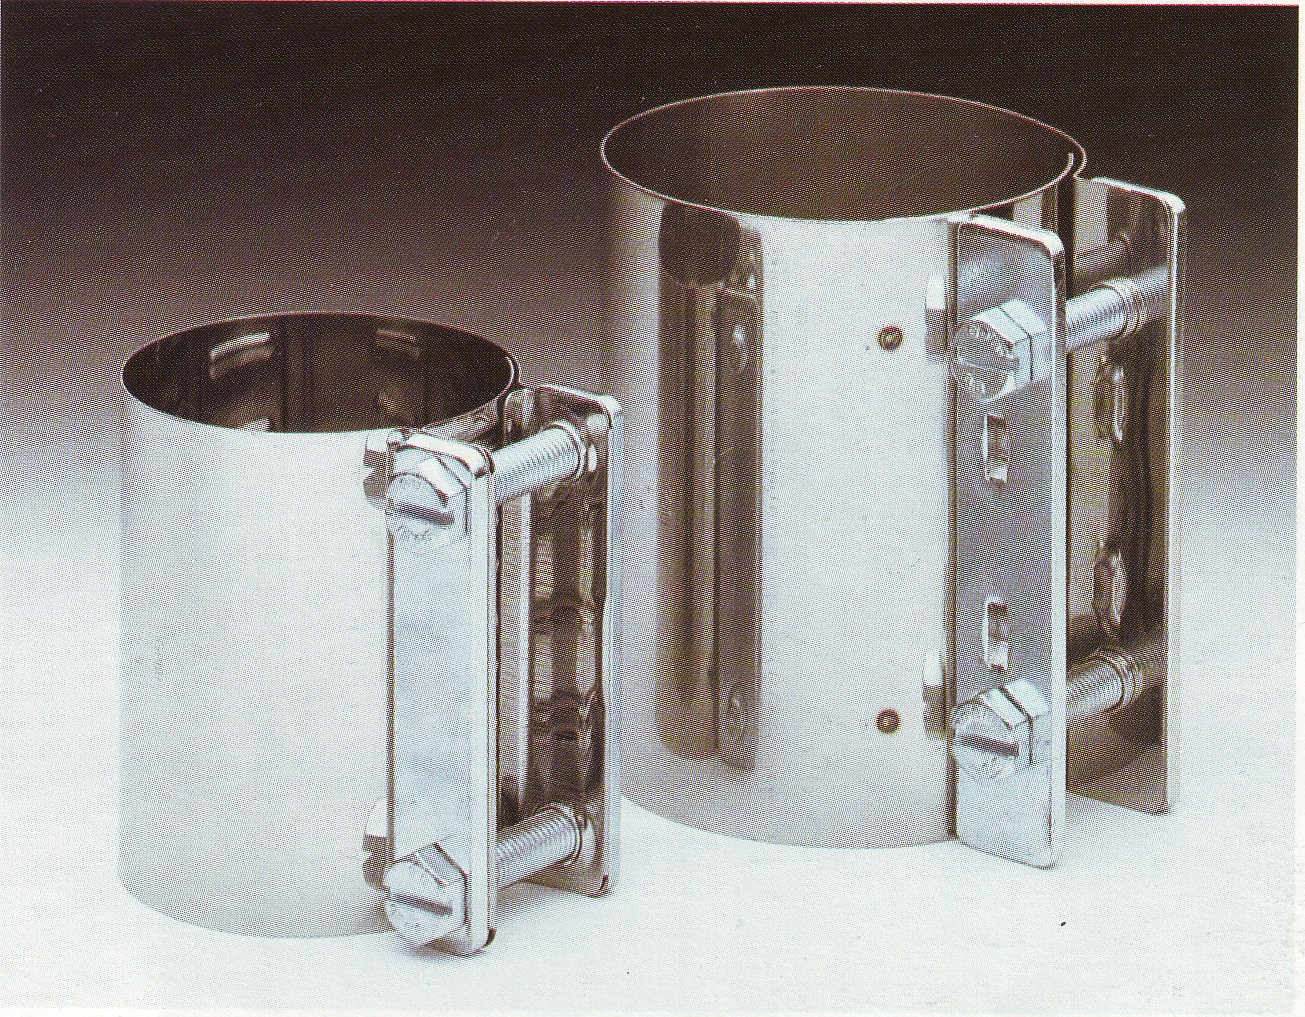 Stock-No  GHC-323B - GEMI® Hose Clamps (Wide band) - maqbelting de